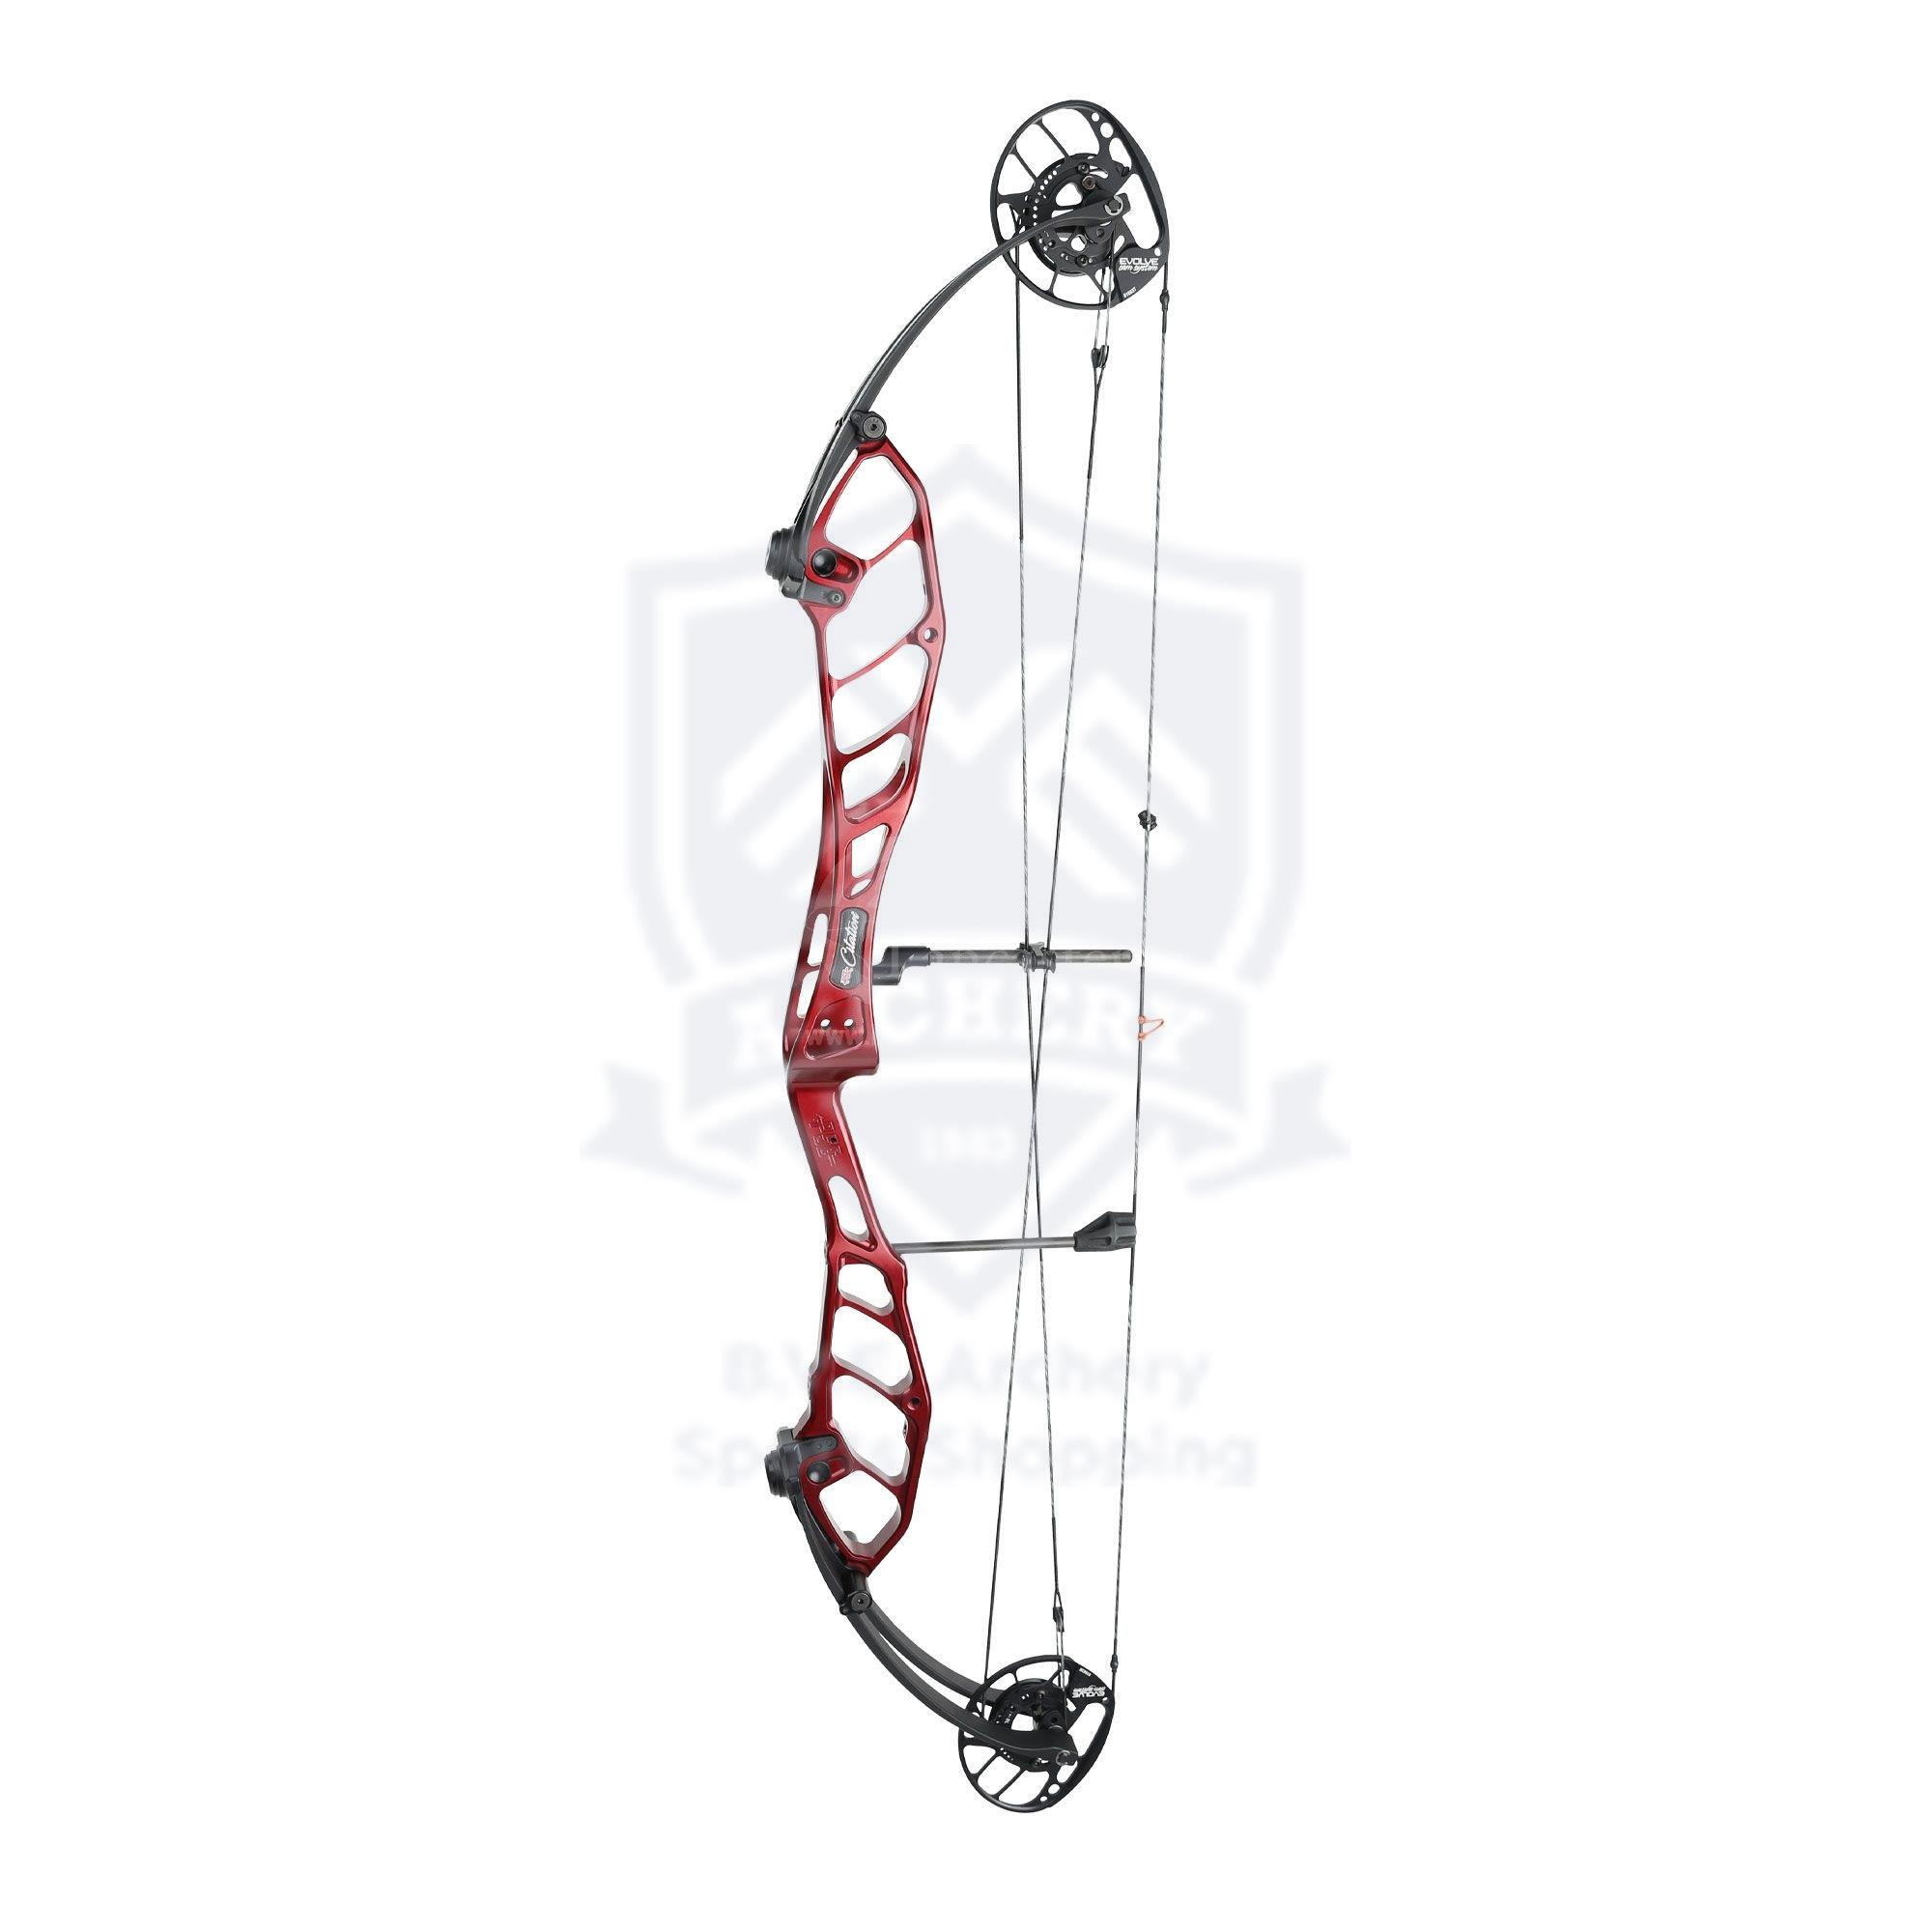 PSE COMPOUND BOW CITATION 36 EM